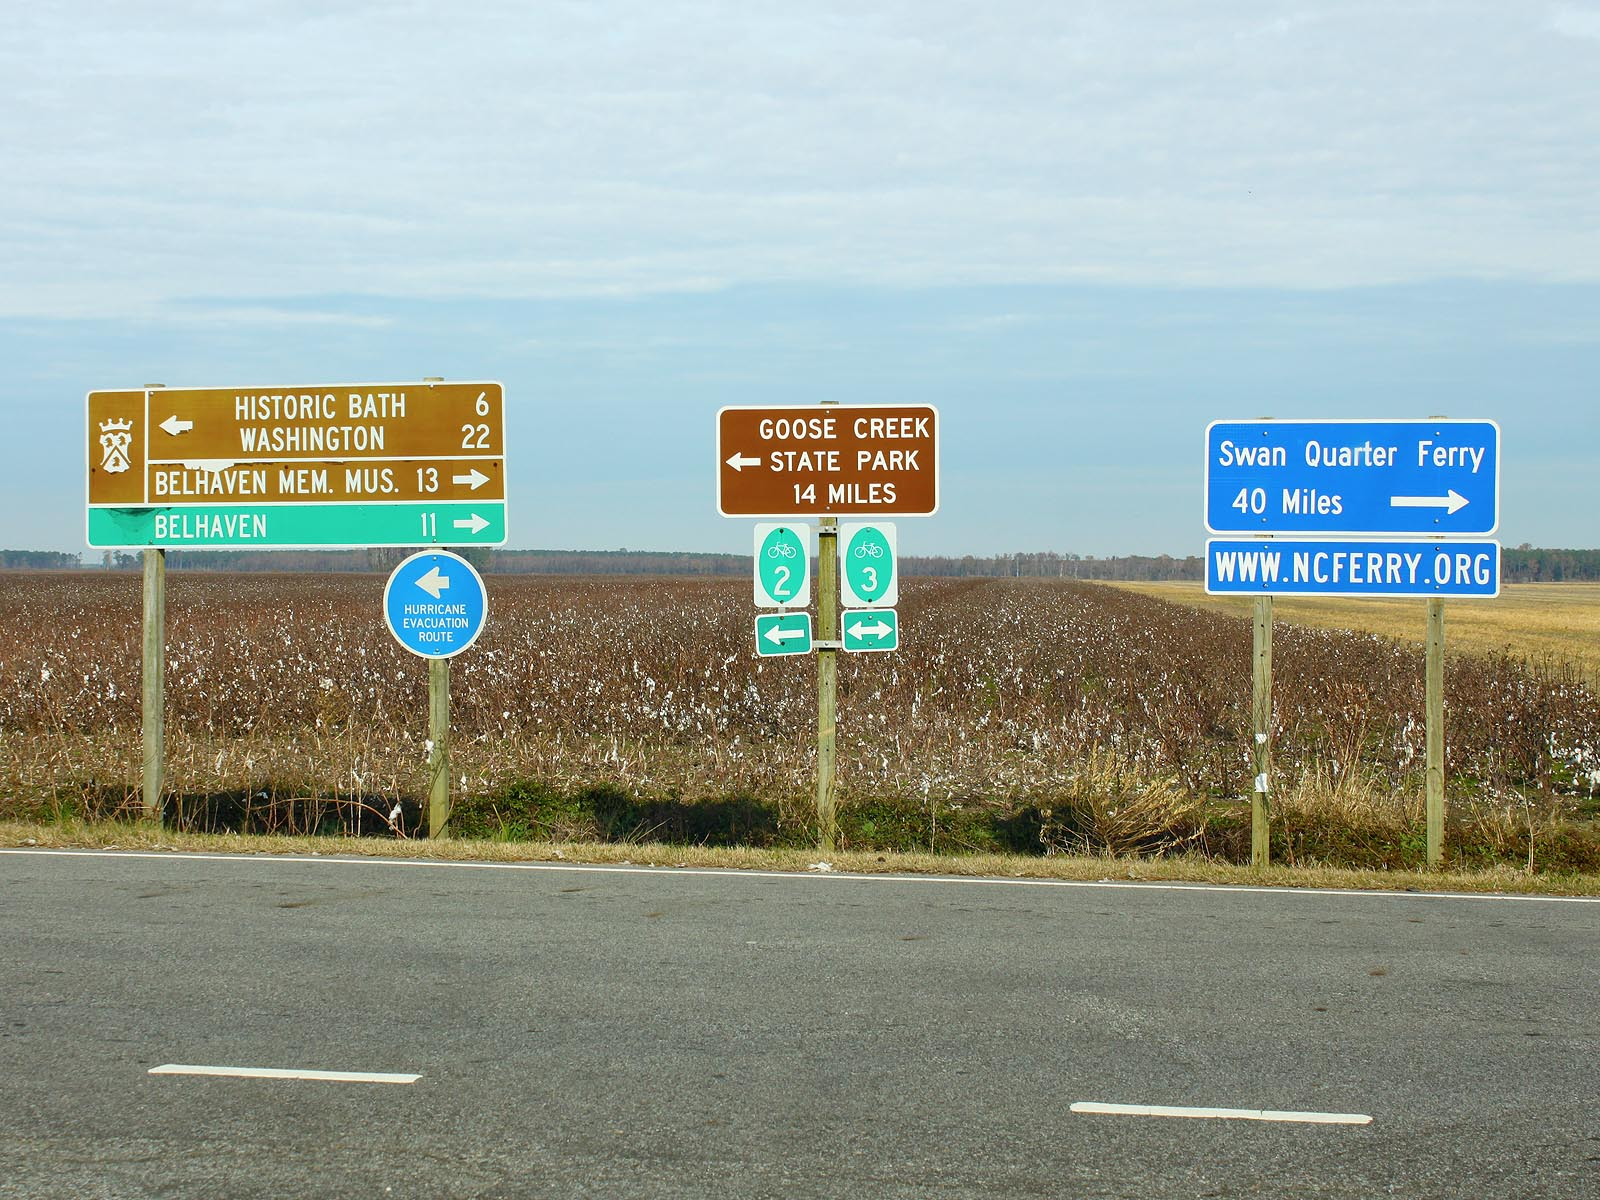 Road signs leaving Bayview ferry station to Goose Creek State Park with cotton field background